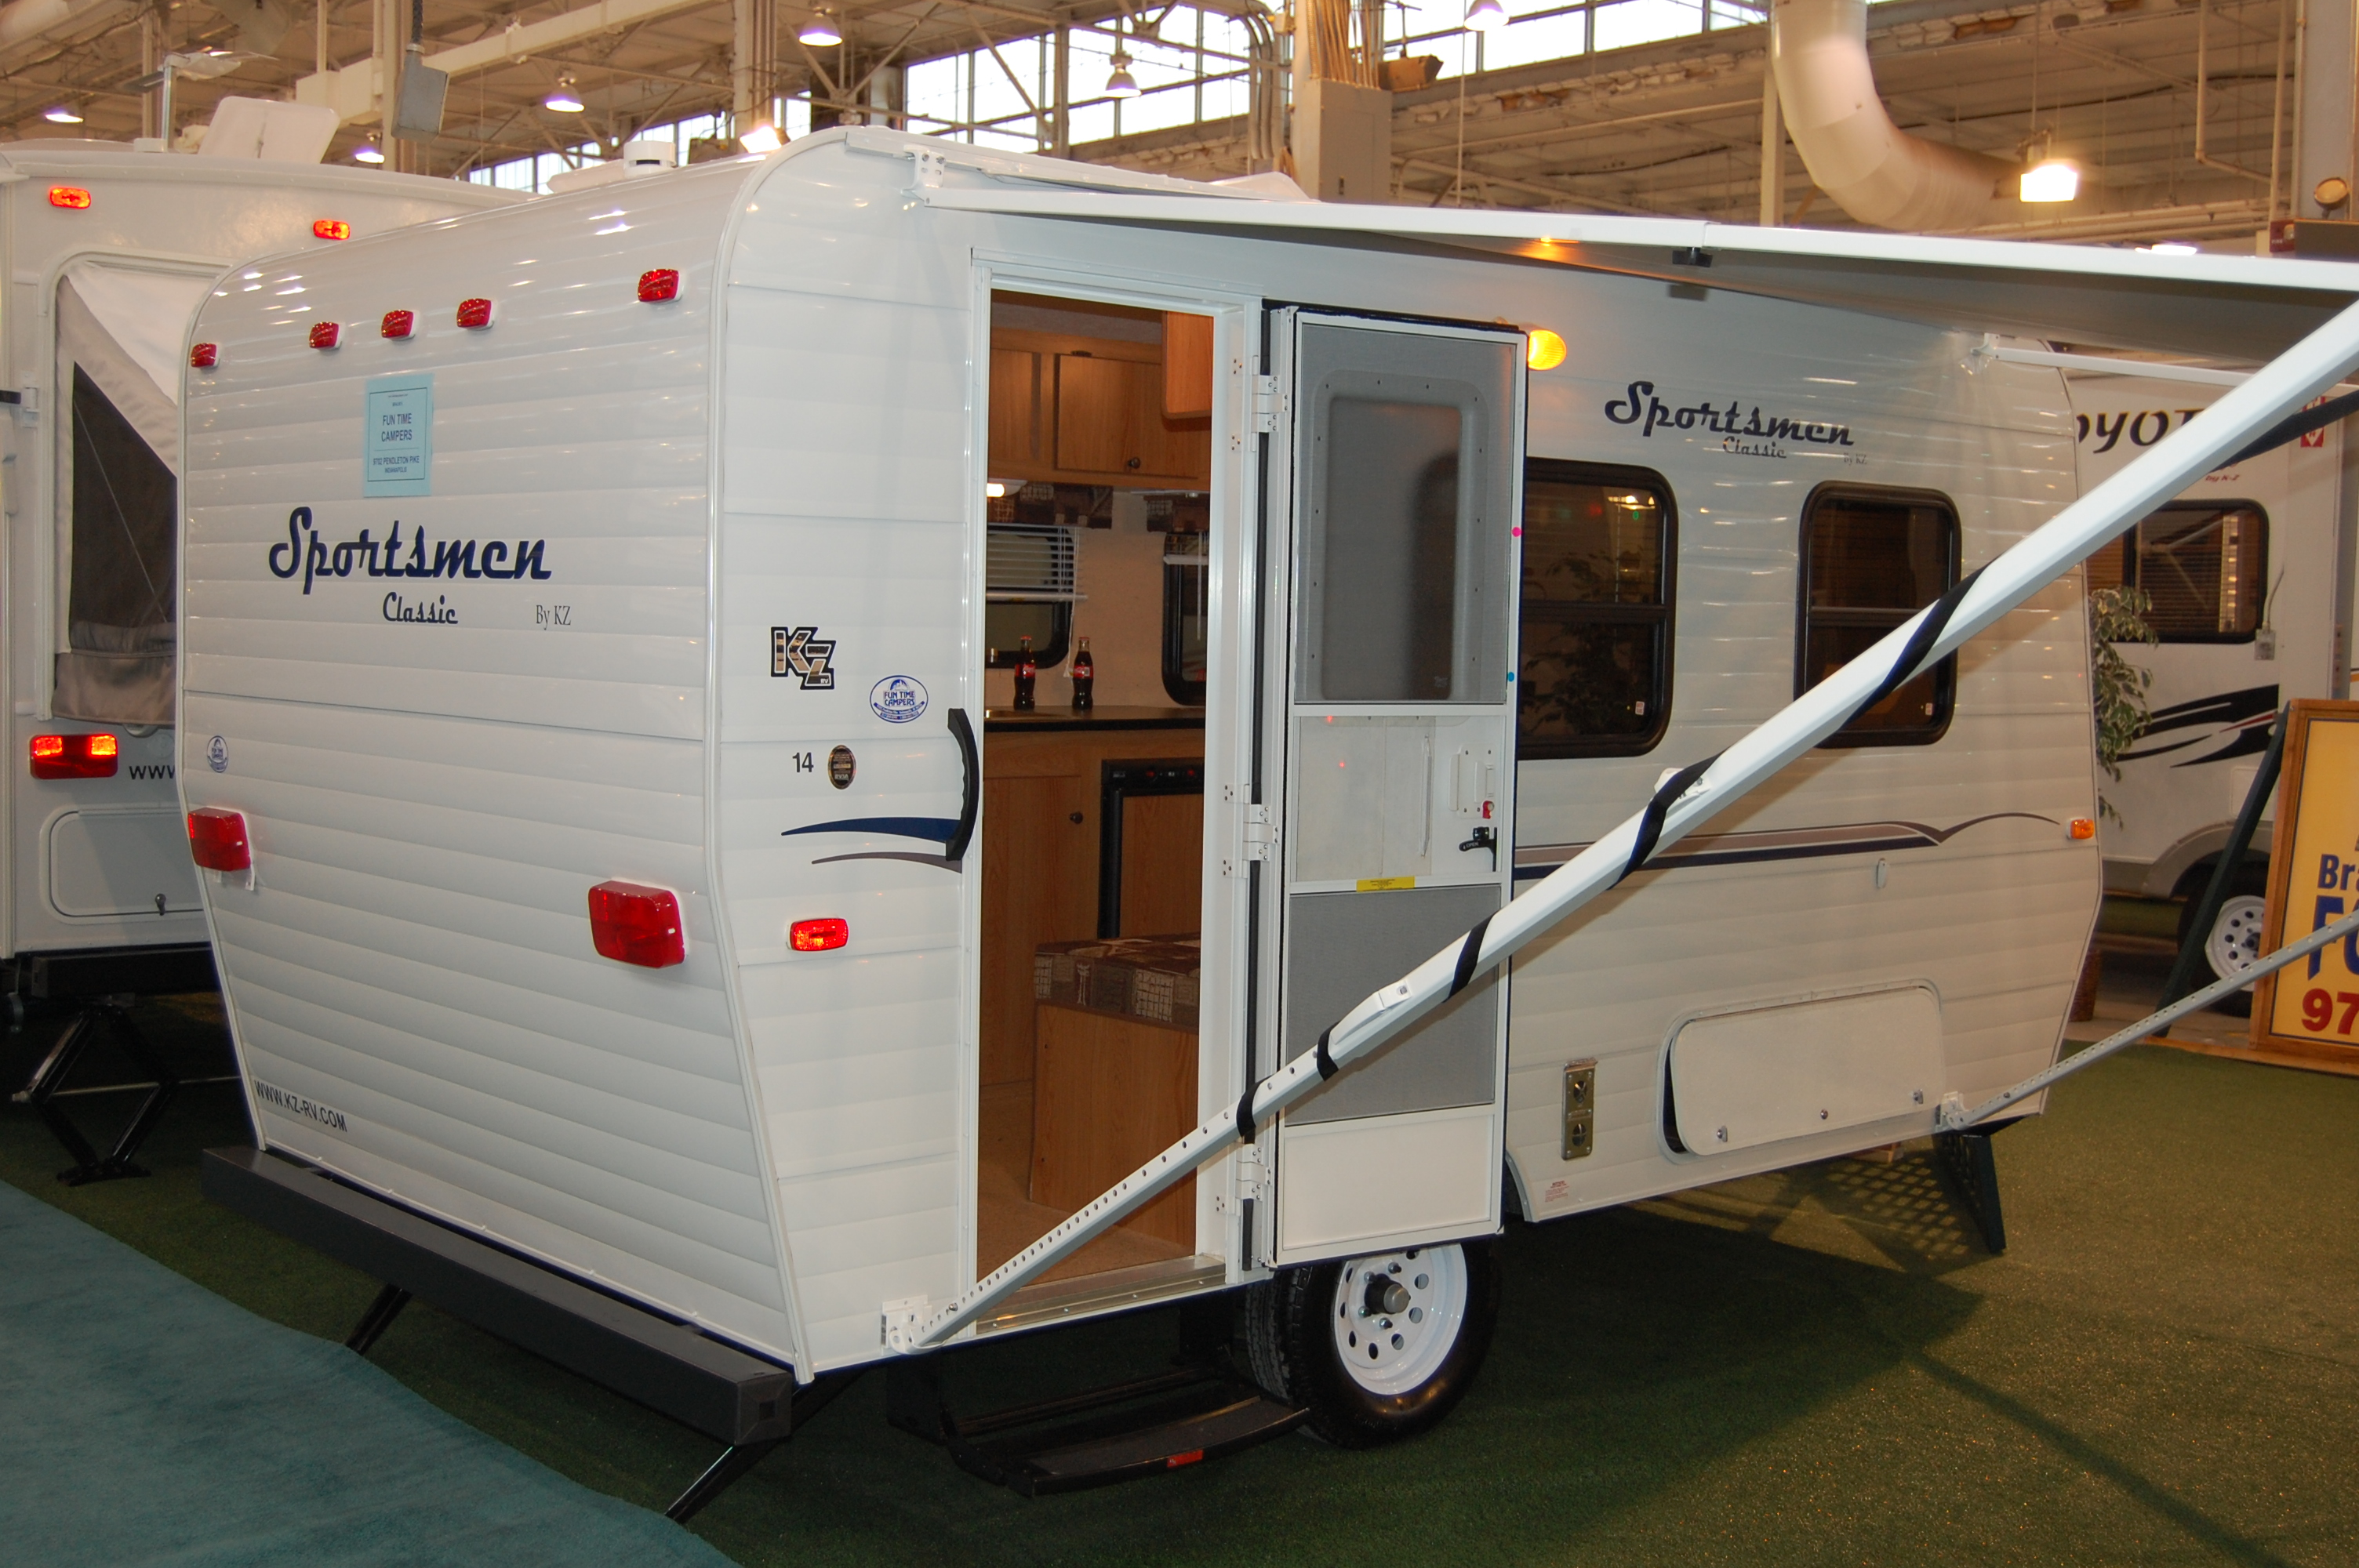 Coleman Pop Up Camper Floor Plans The Crowded 14 Floor Plan The Small Trailer Enthusiast